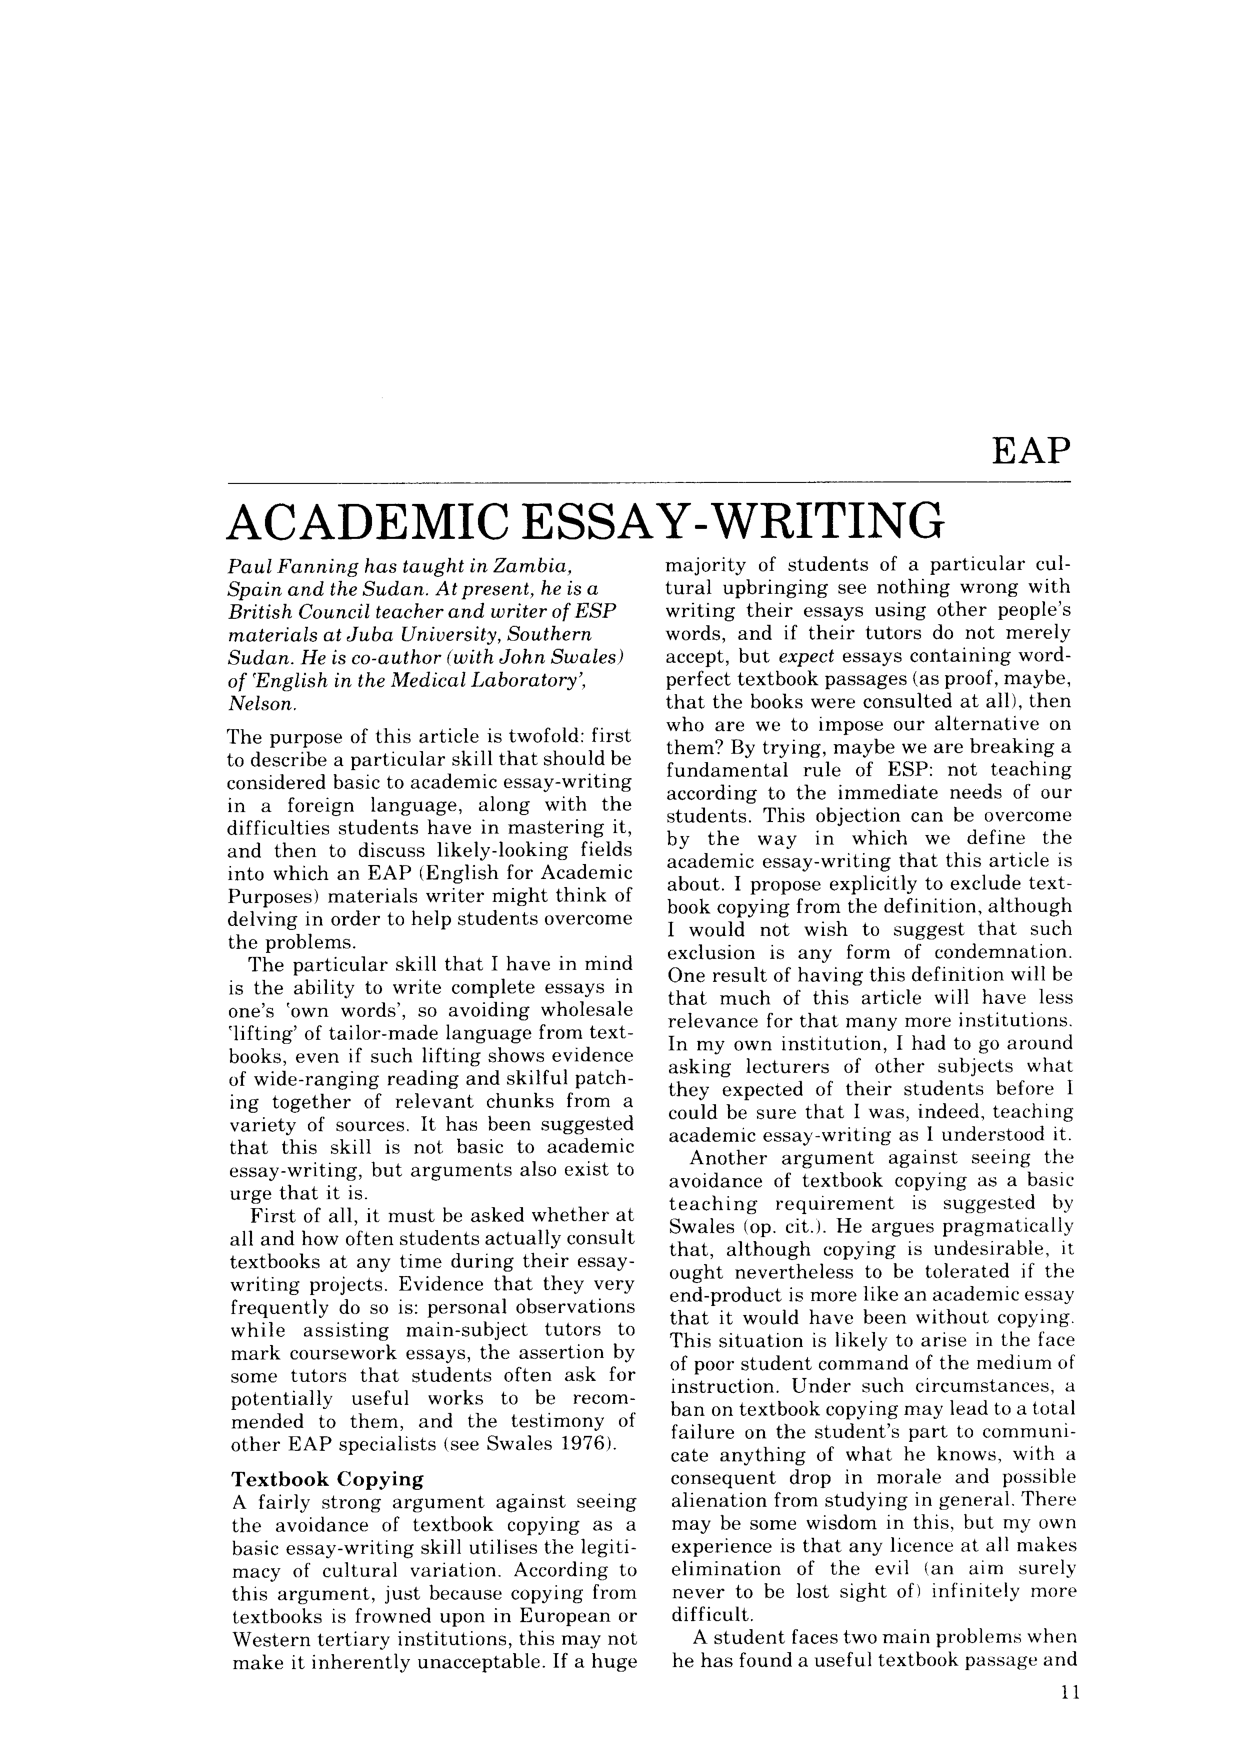 academic essay writing example Below is a pdf link to personal statements and application essays representing strong efforts by students applying for both undergraduate and graduate opportunities.